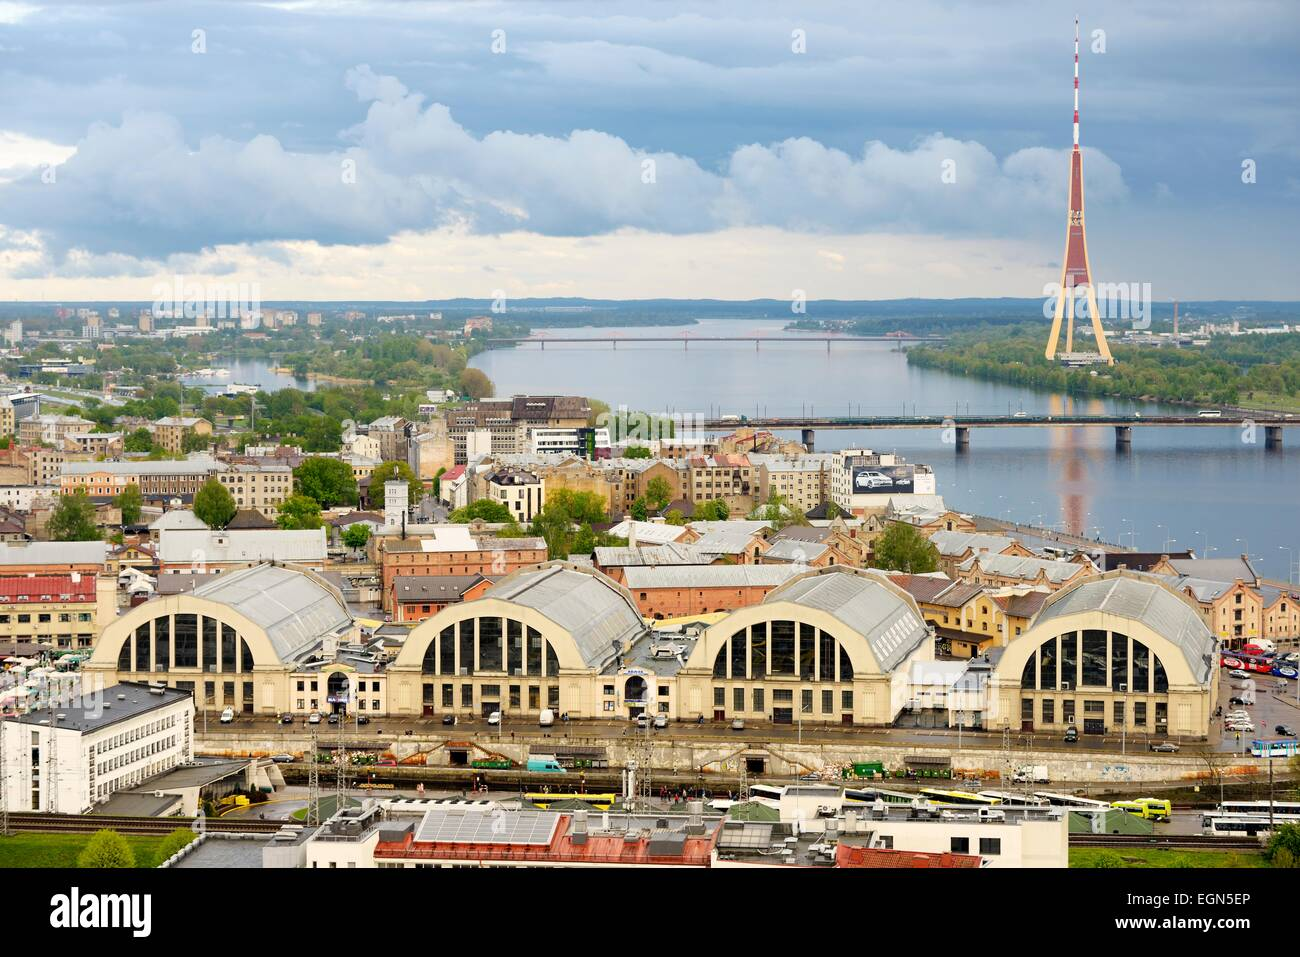 Riga, Latvia. South up the Daugava River to the Television Tower. 4 WW1 Zeppelin hangars now the city market Centraltirgus Stock Photo